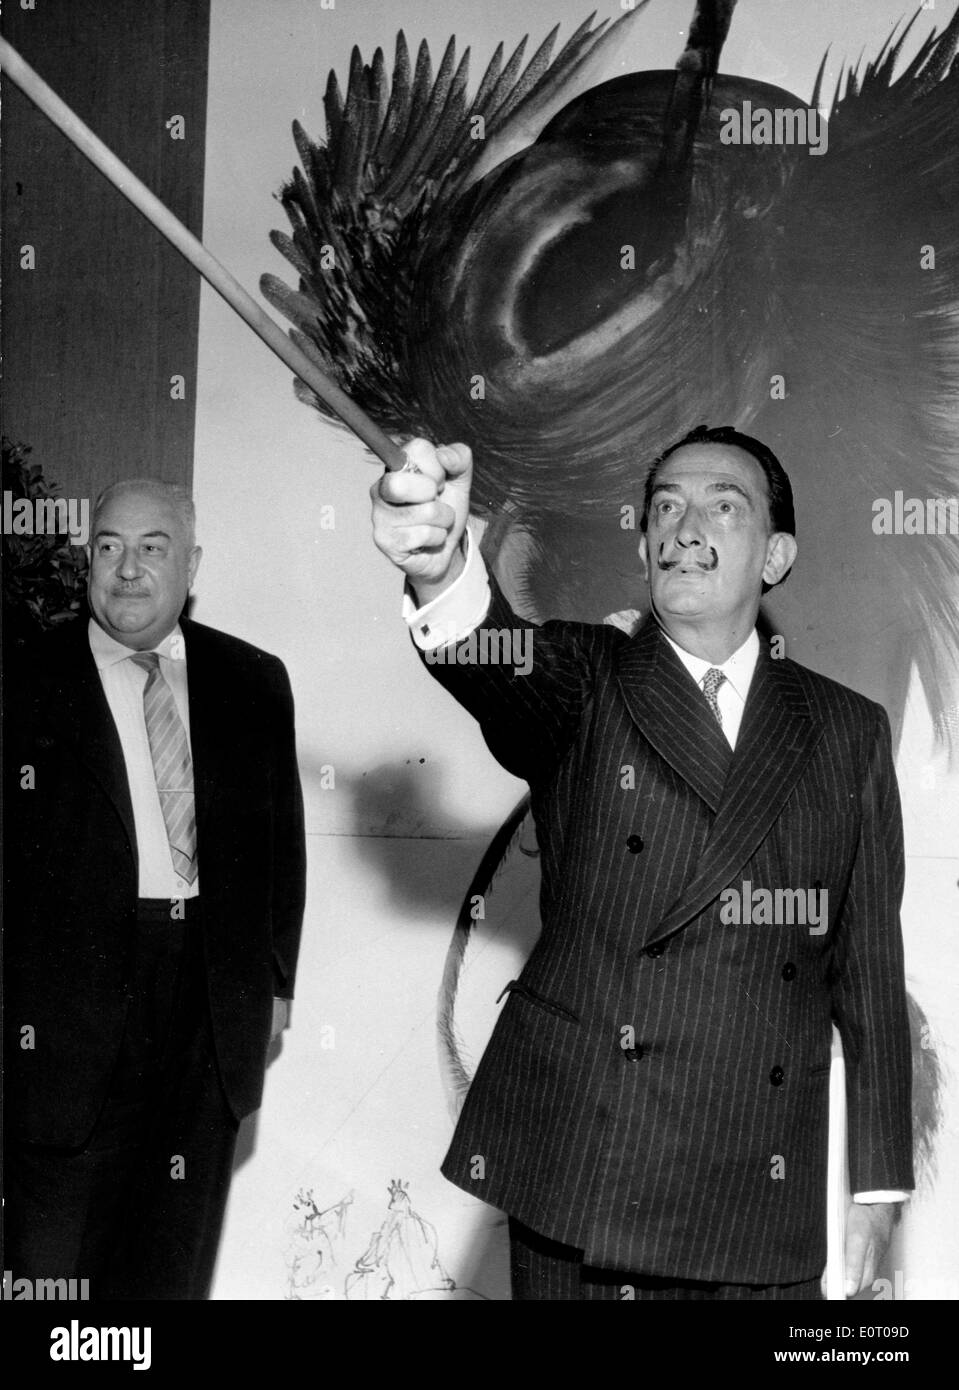 Salvador Dali in front of his painting 'Satan' - Stock Image